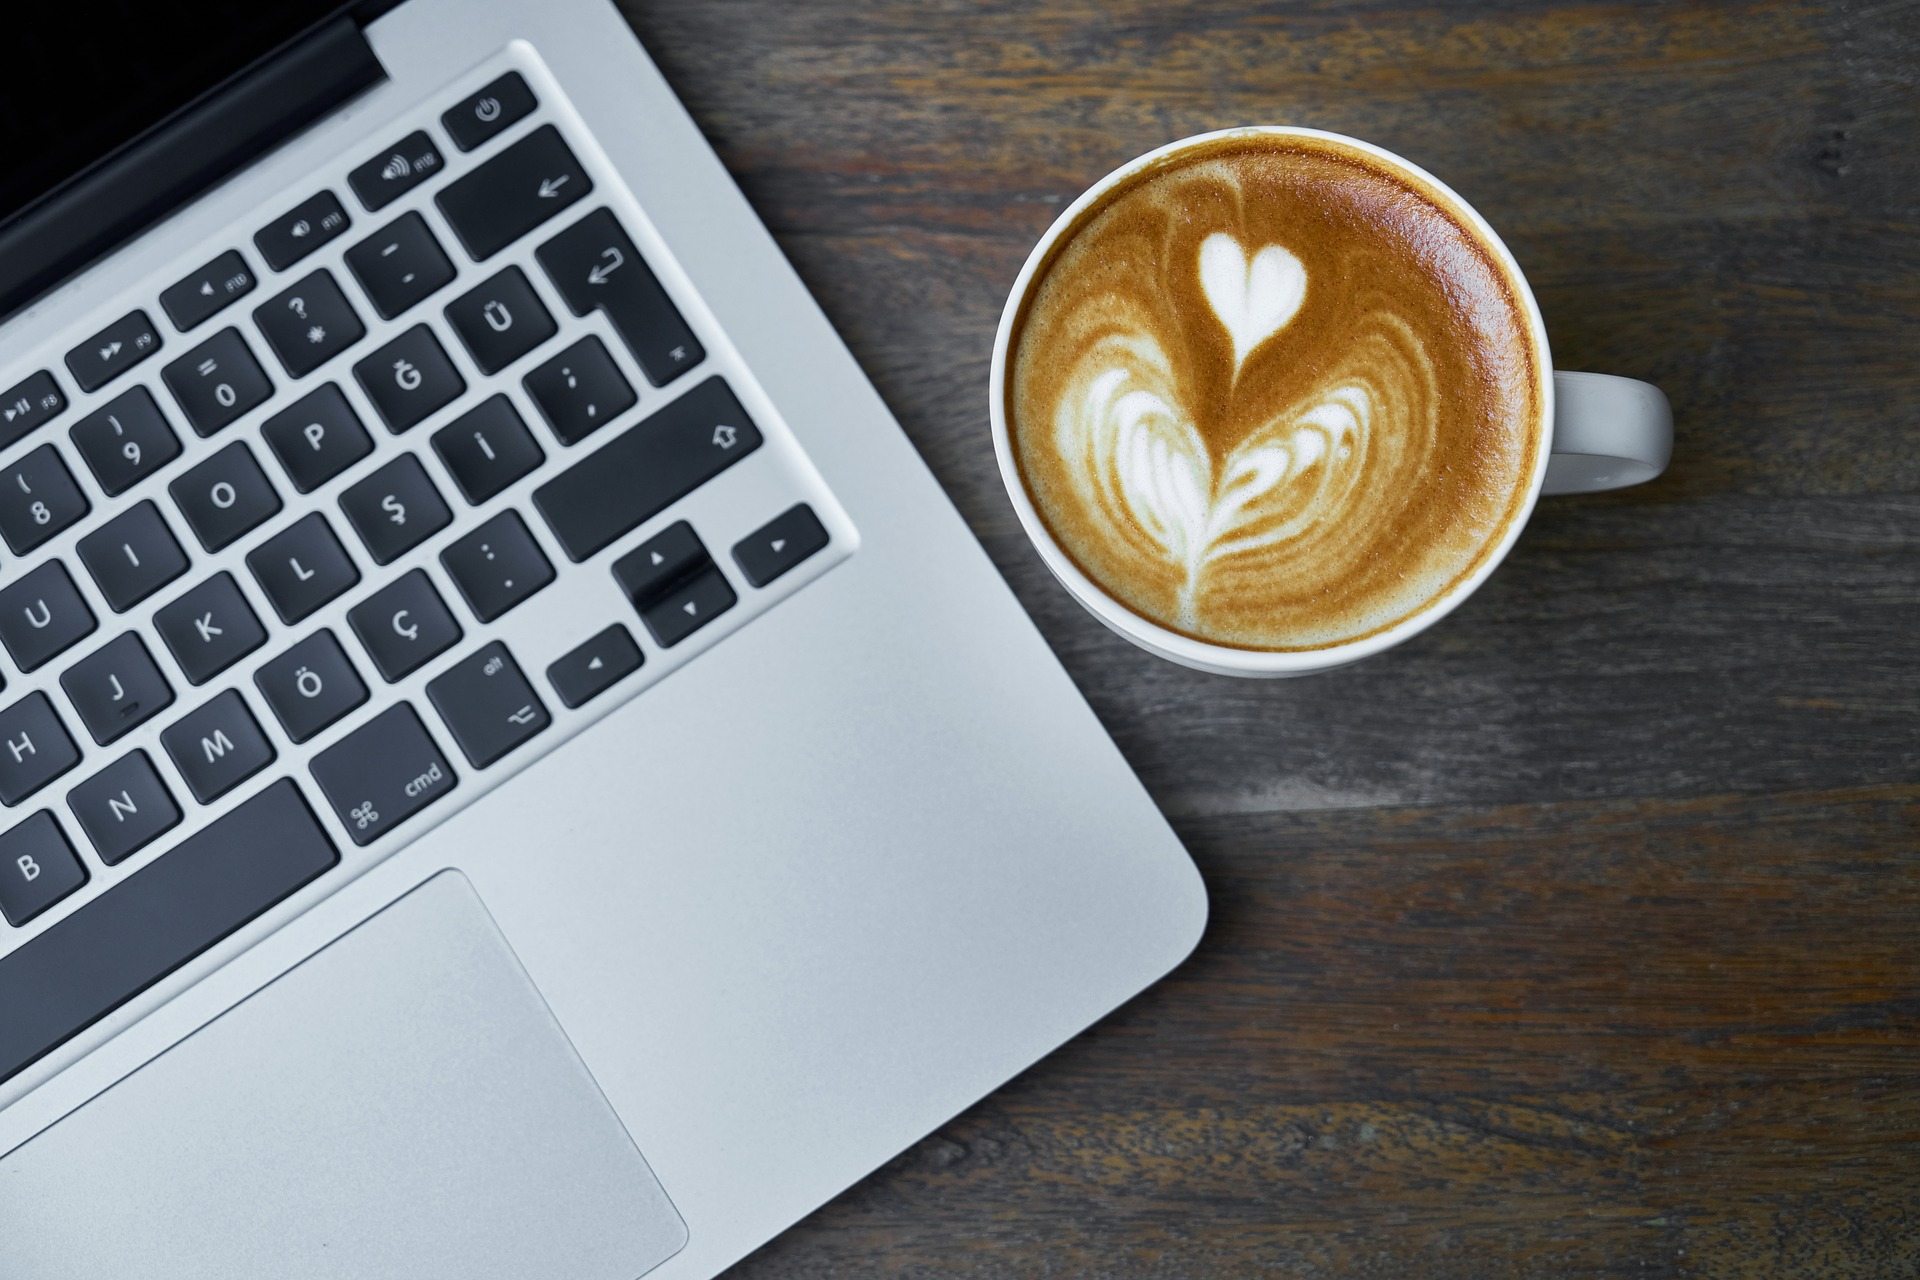 Computer and Coffee